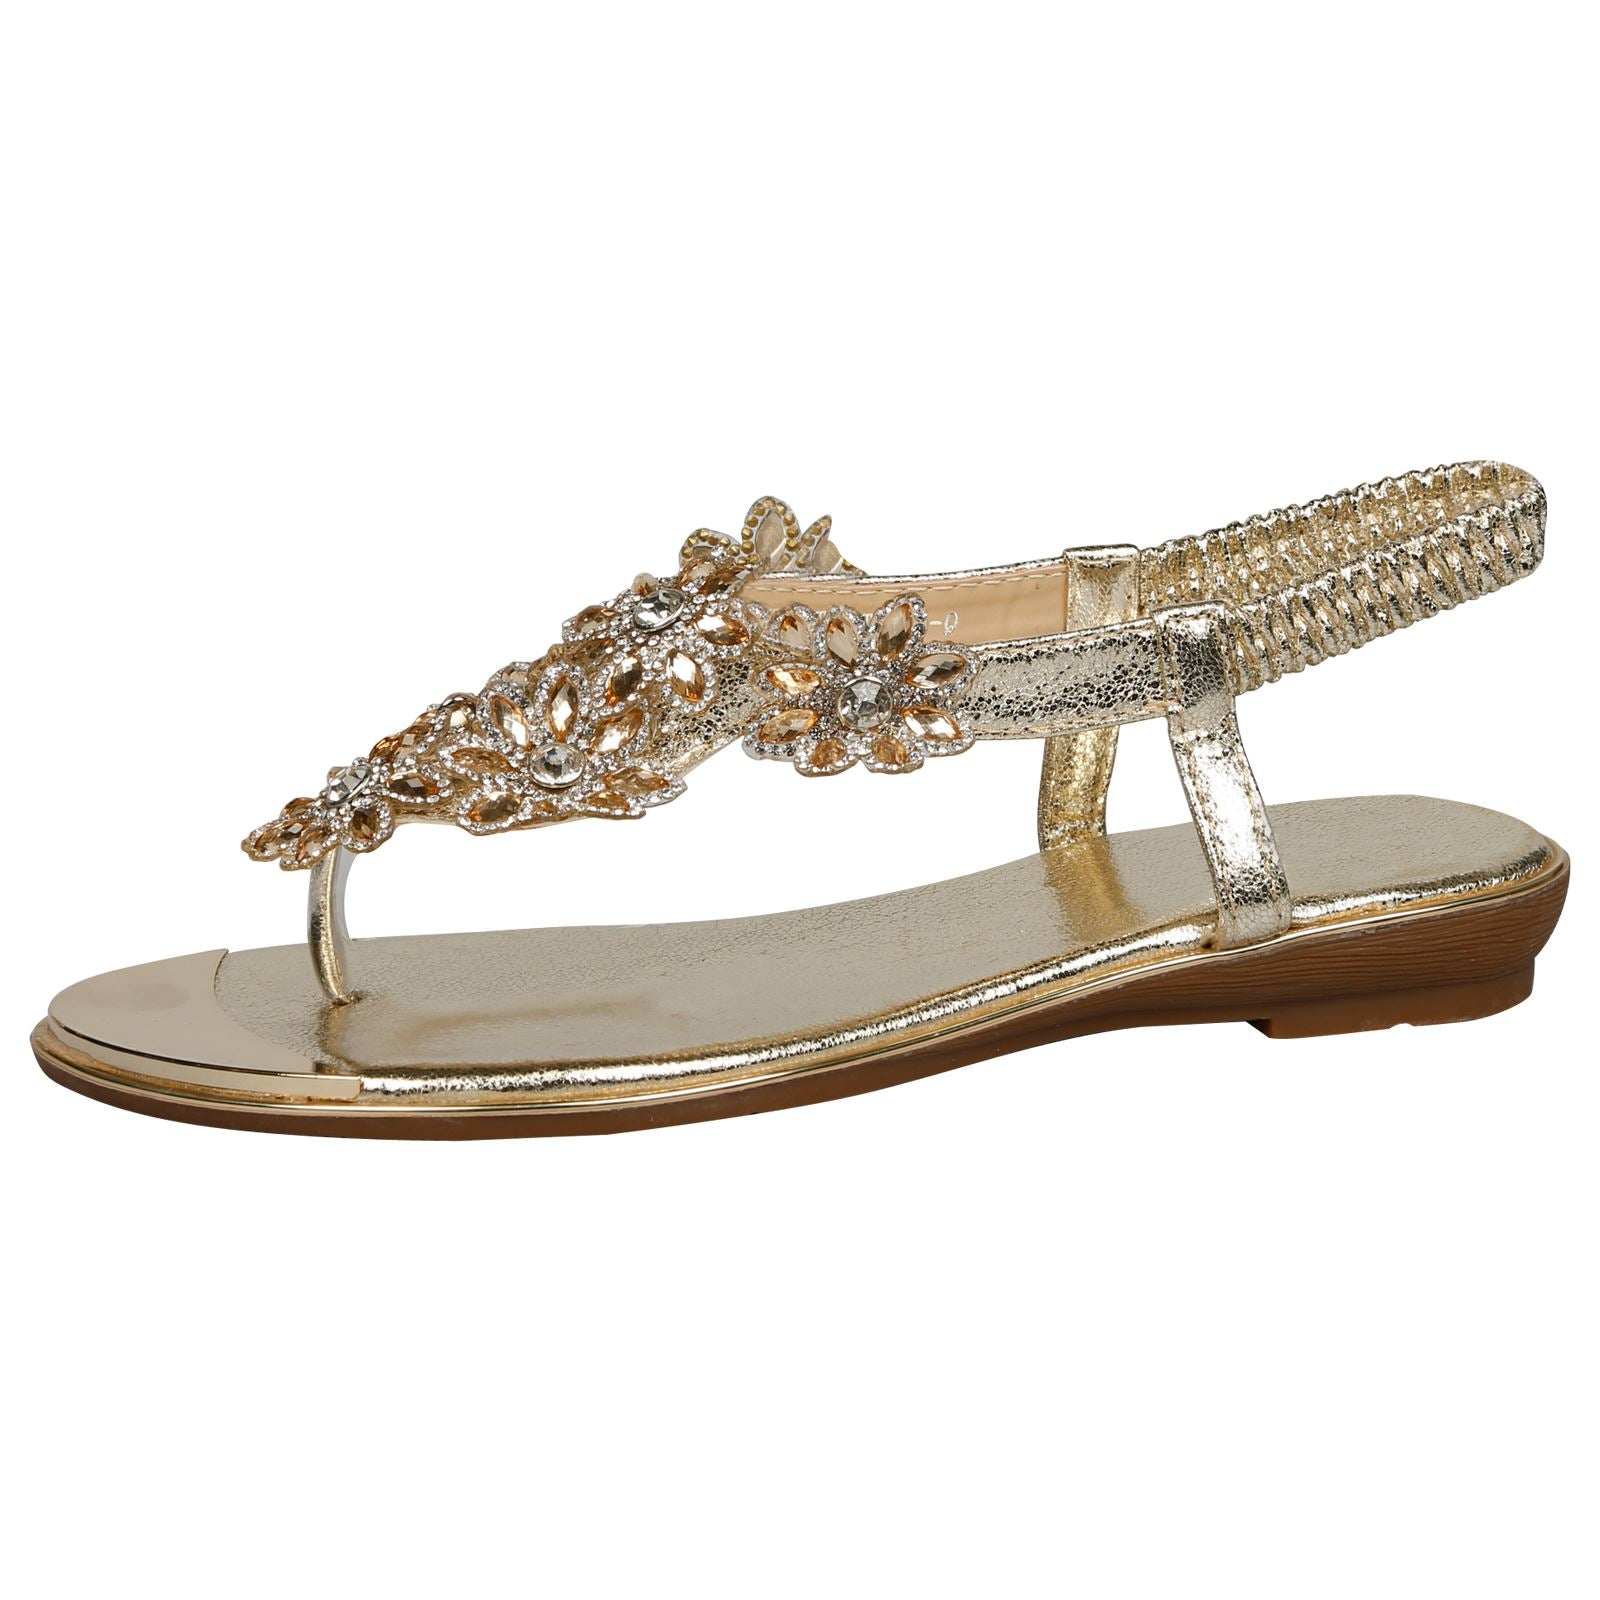 Tayla Floral Diamante Sandals in Gold